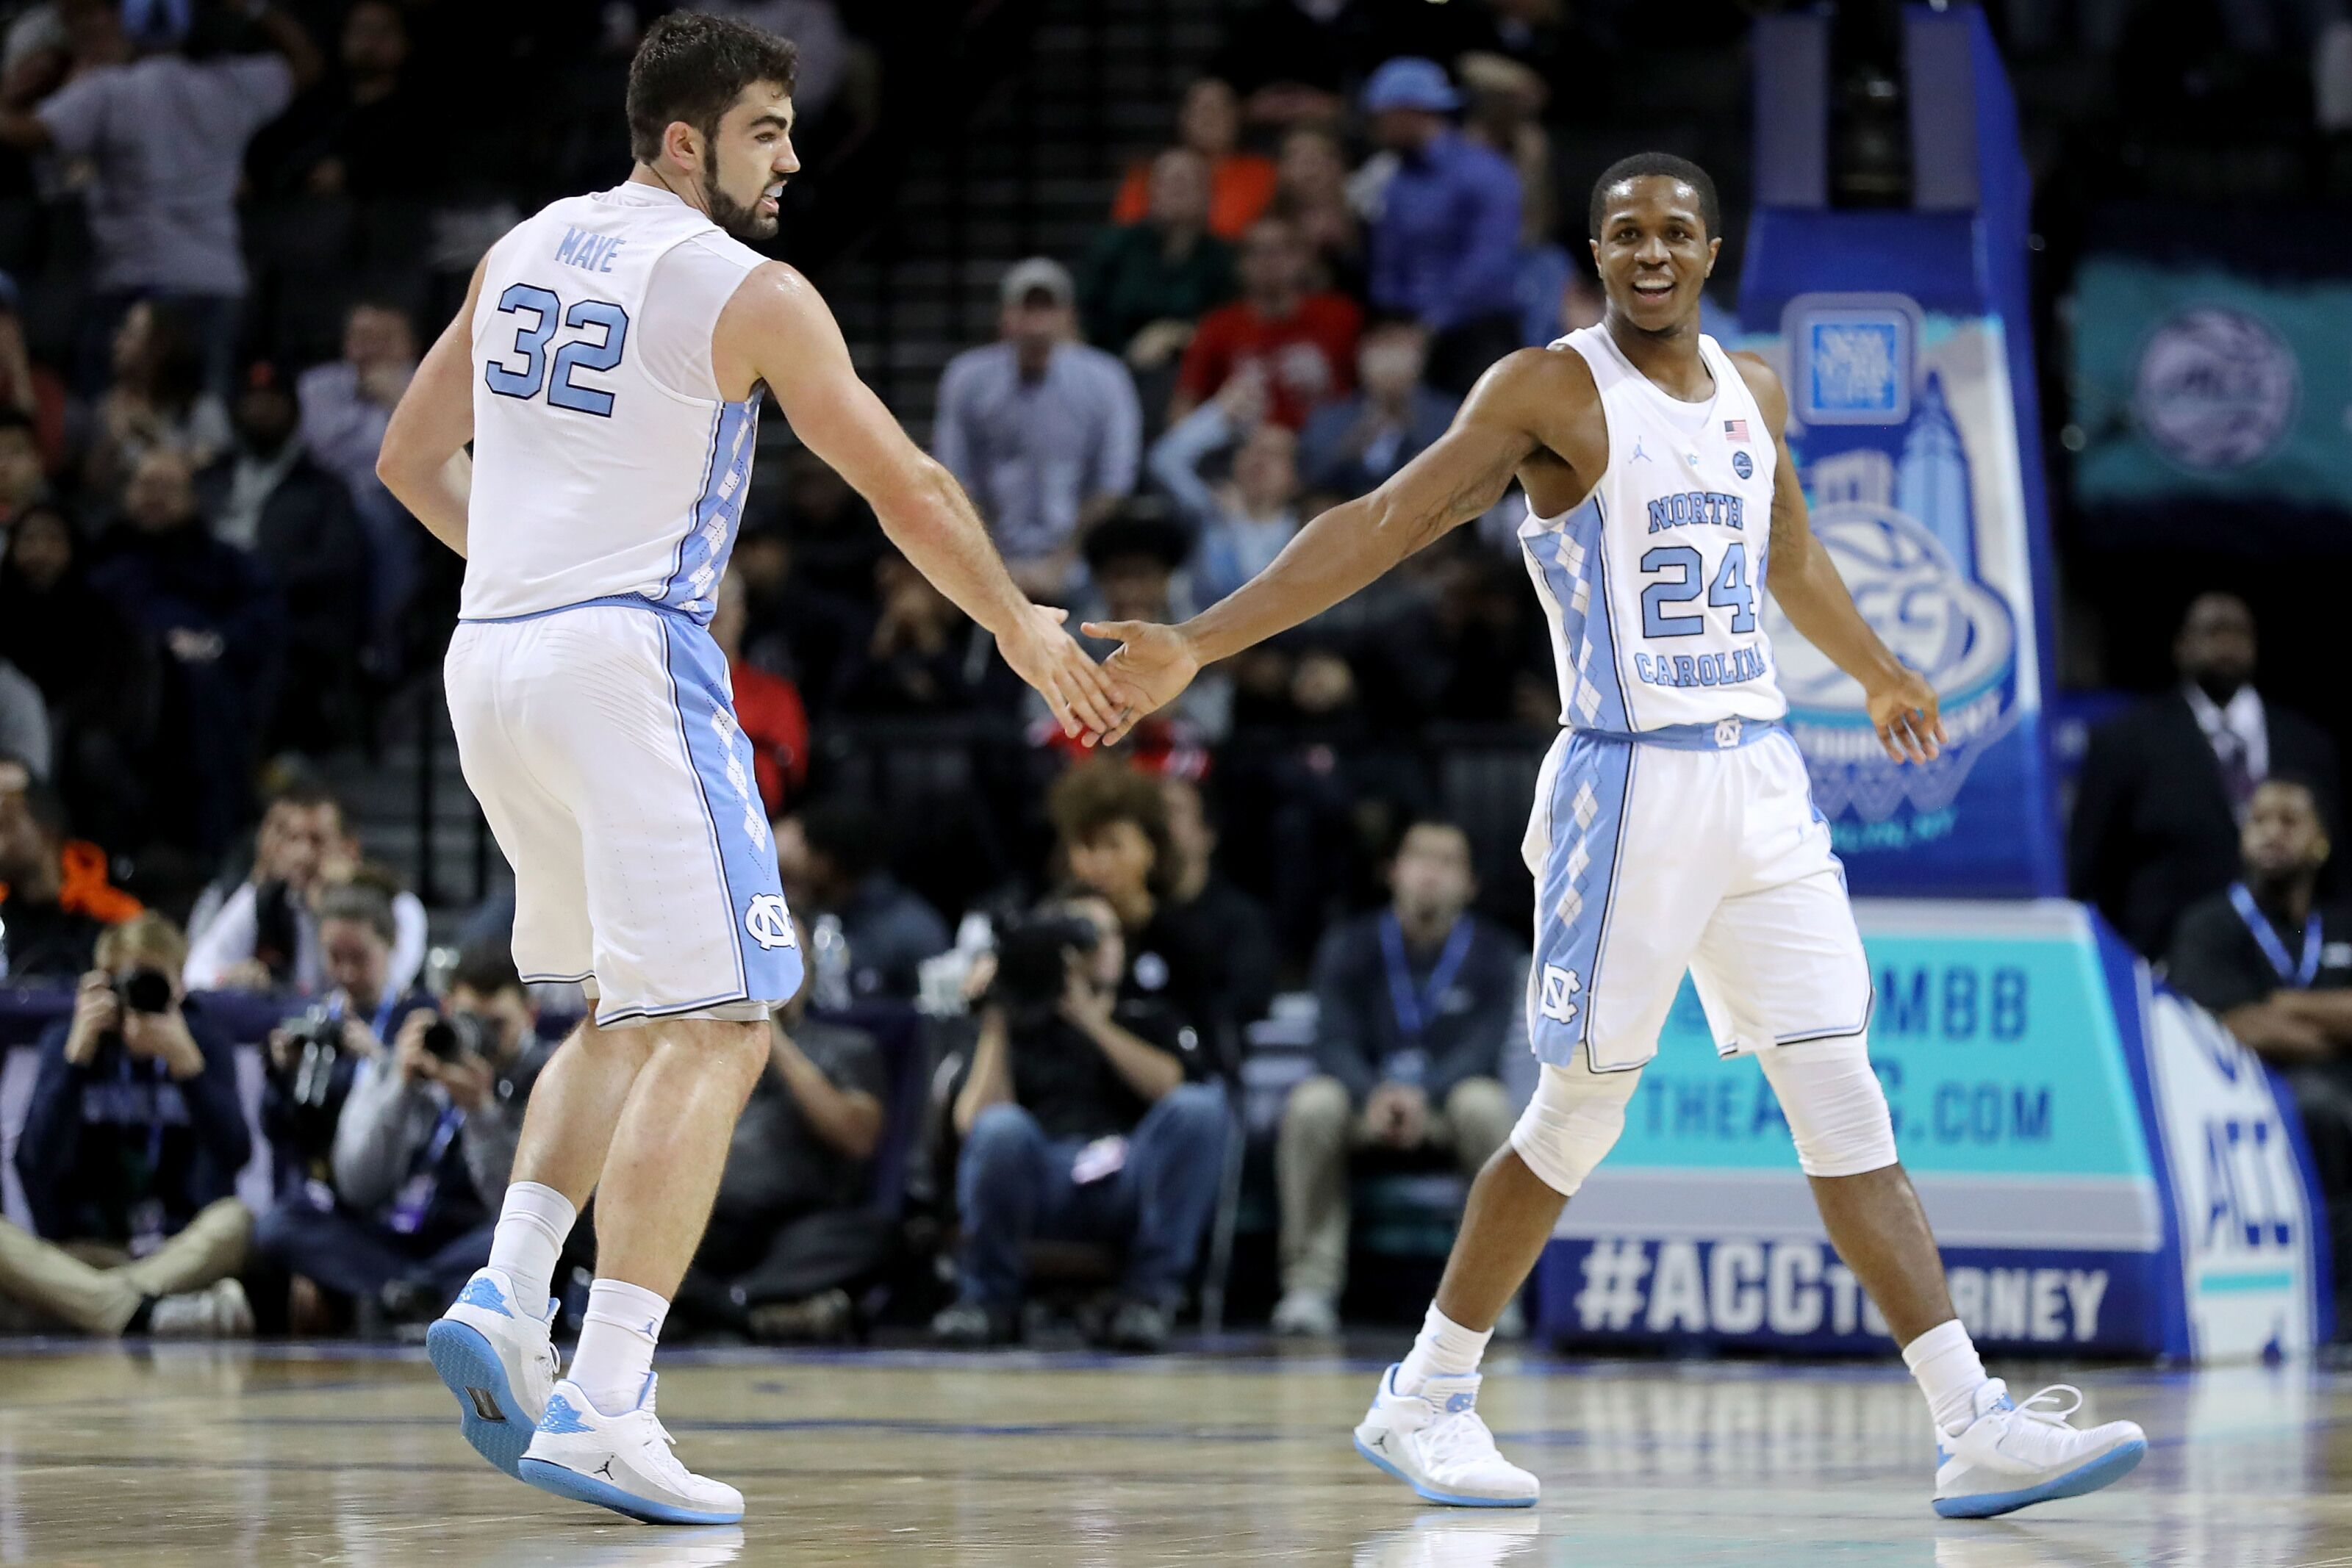 NBA Summer League: UNC Seniors find new homes in the NBA